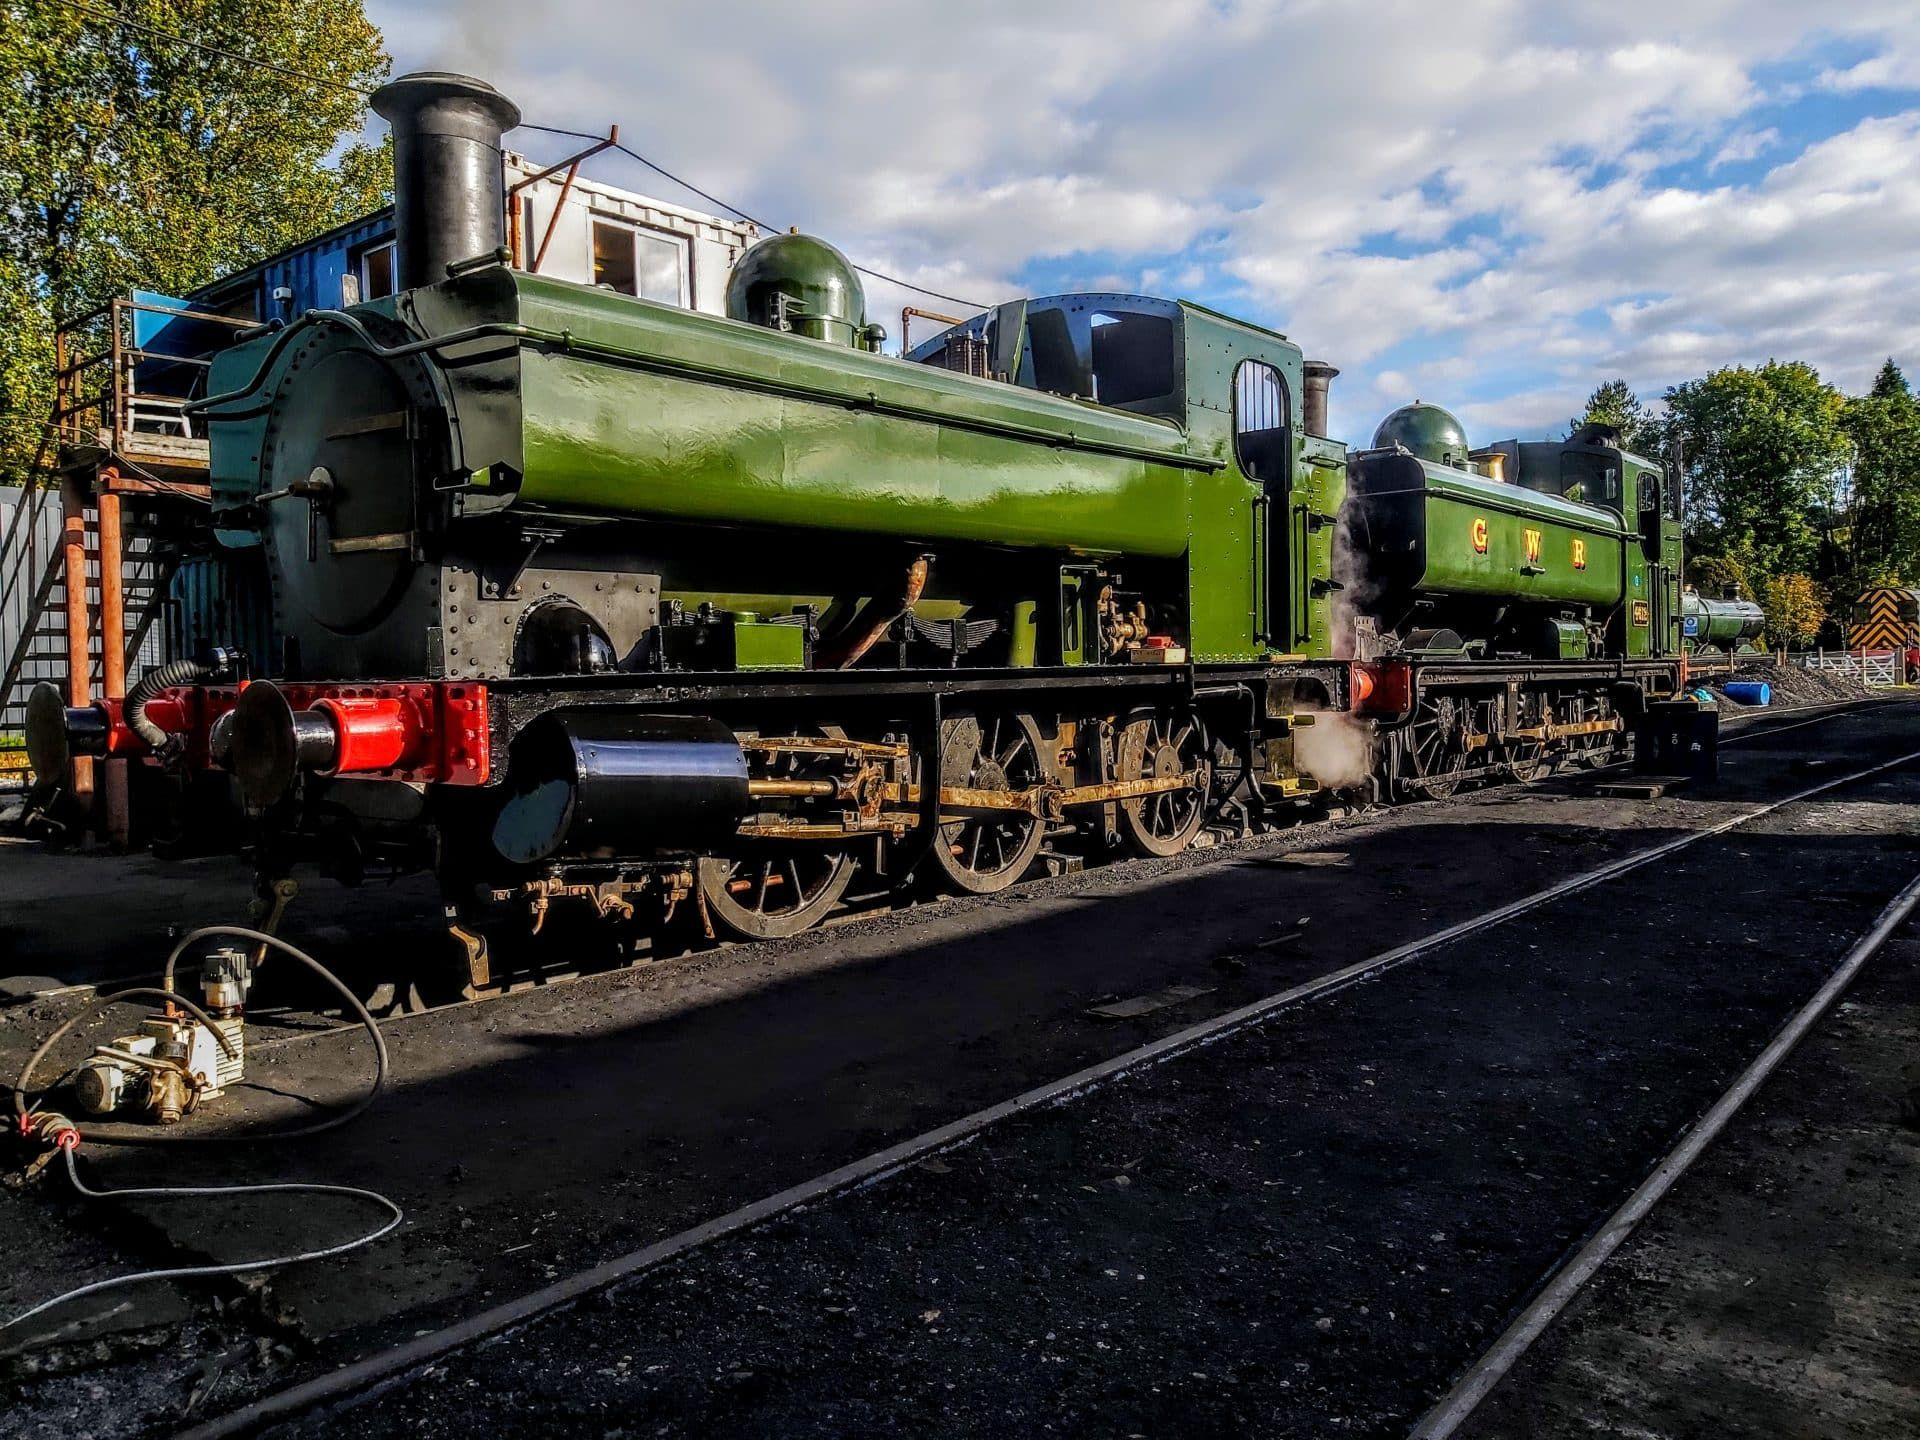 Steam in review 2019 GWR No. 1369 Steam